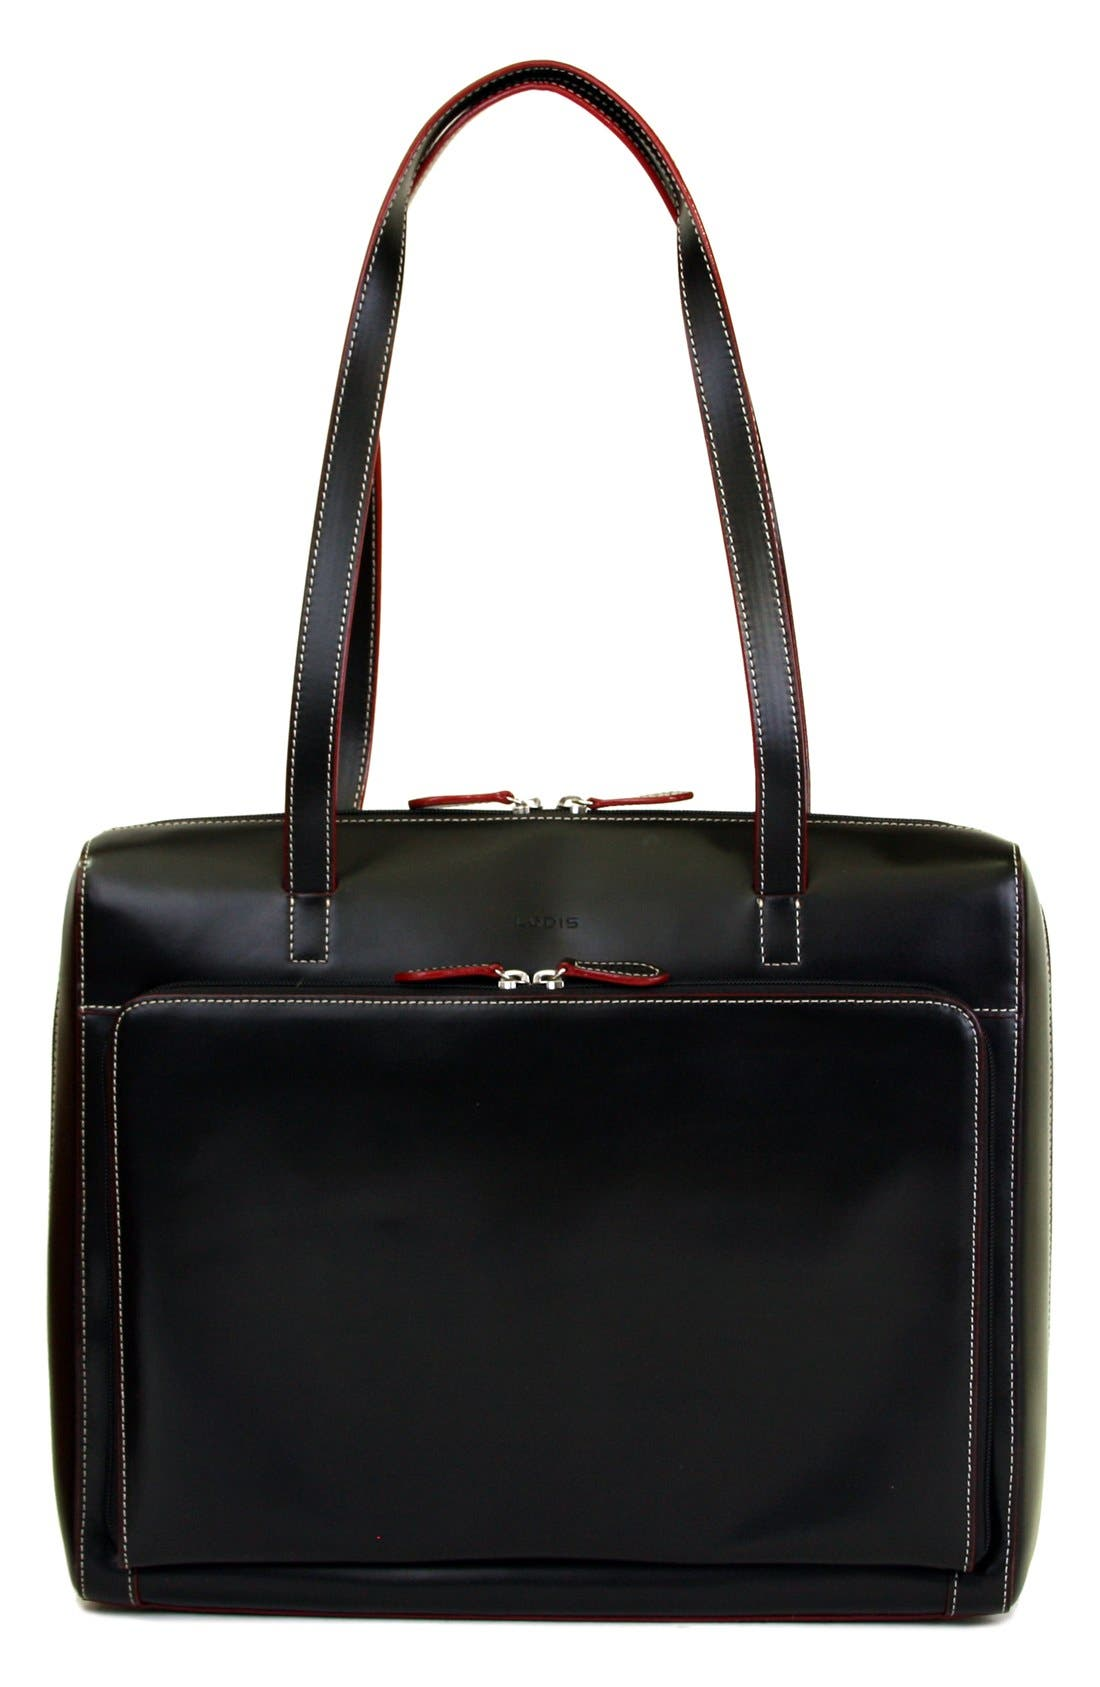 LODIS 'Audrey Collection - Organizer' Tote with Shoulder